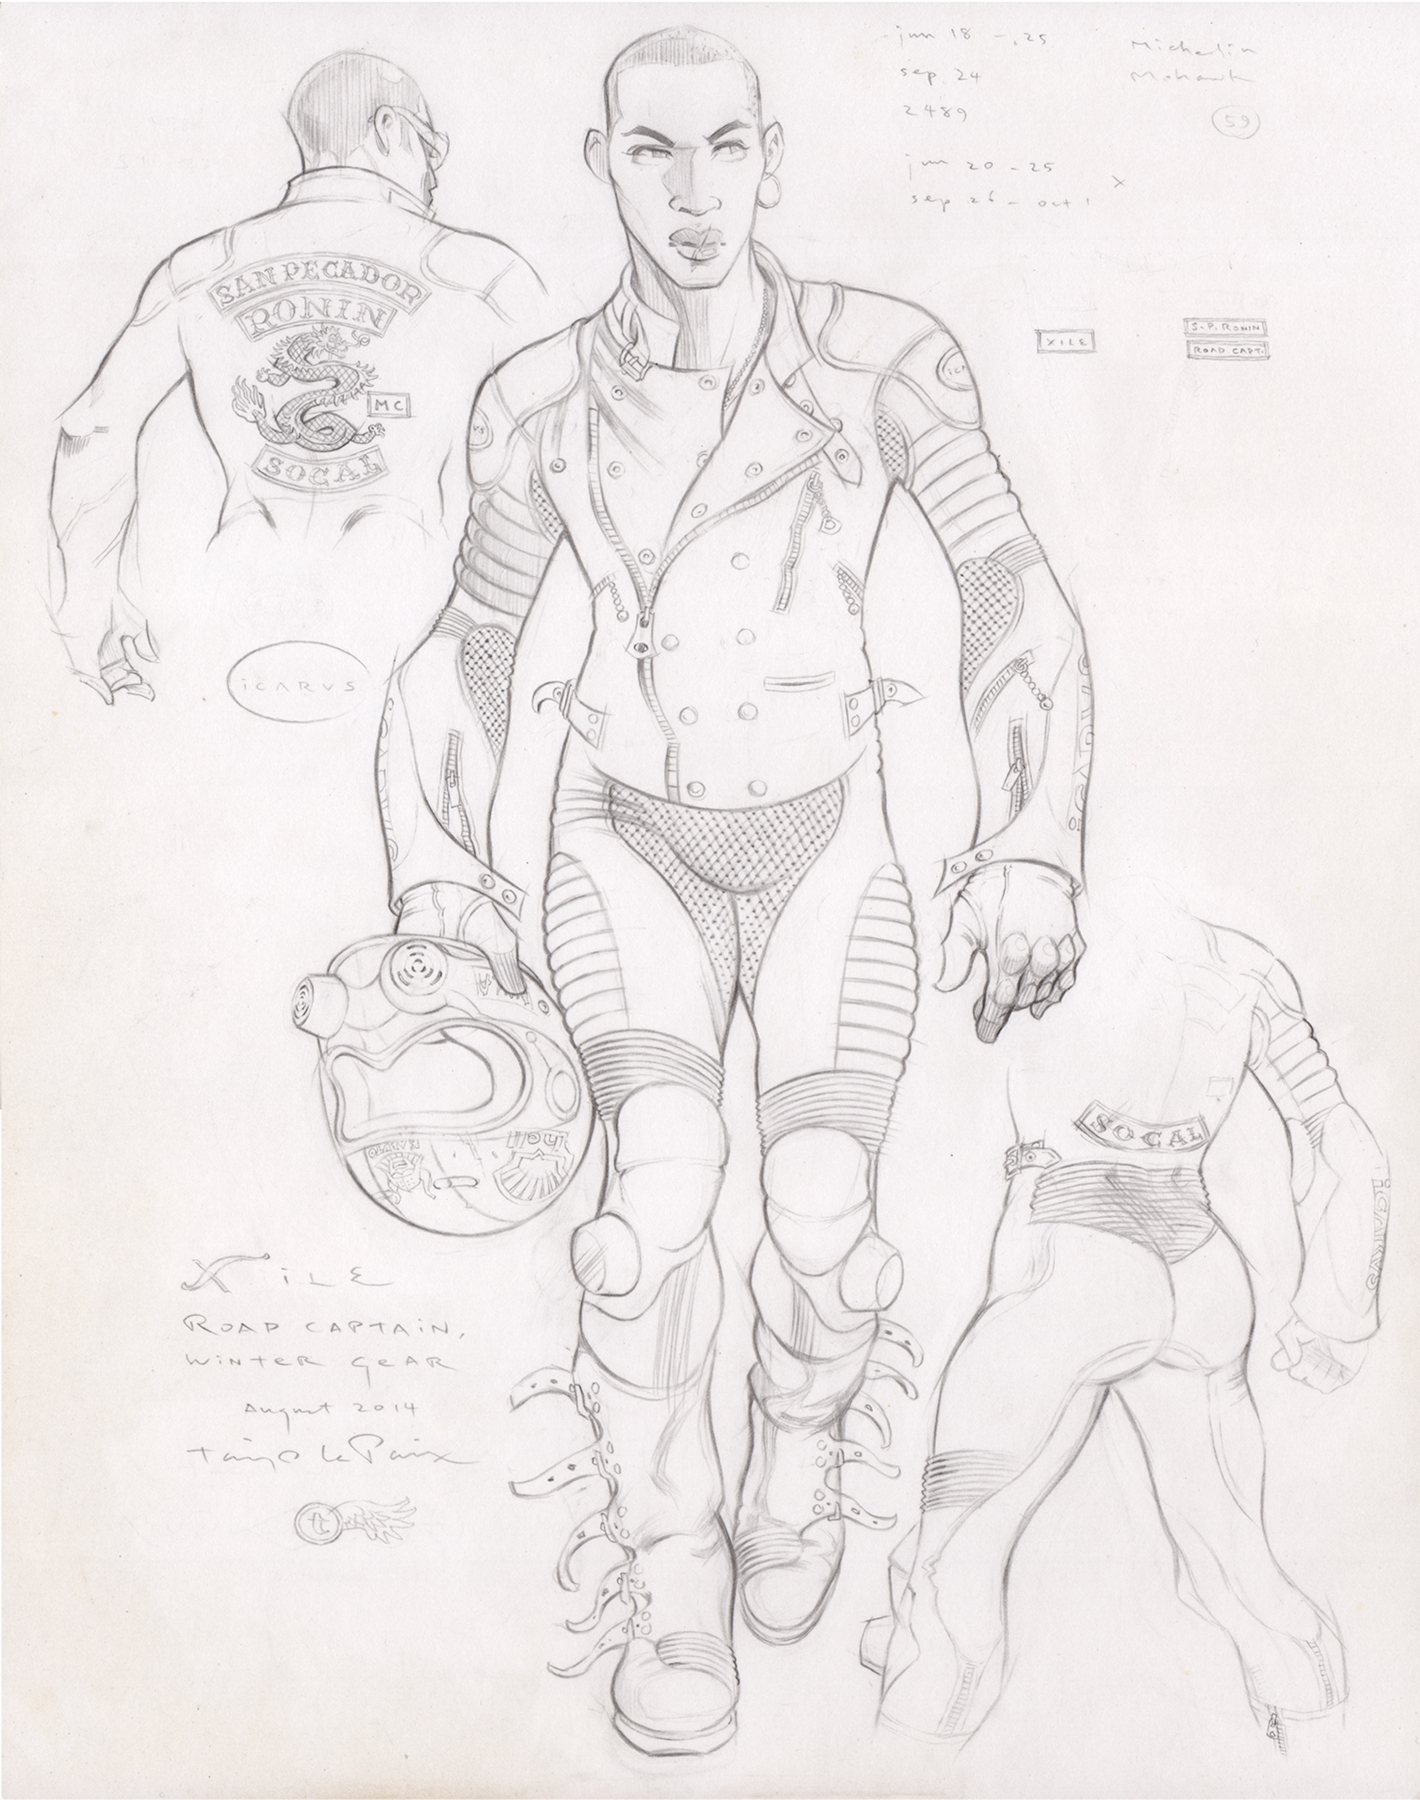 Xile, Winter Gear, 2014, pencil on paper, 14 x 11 inches